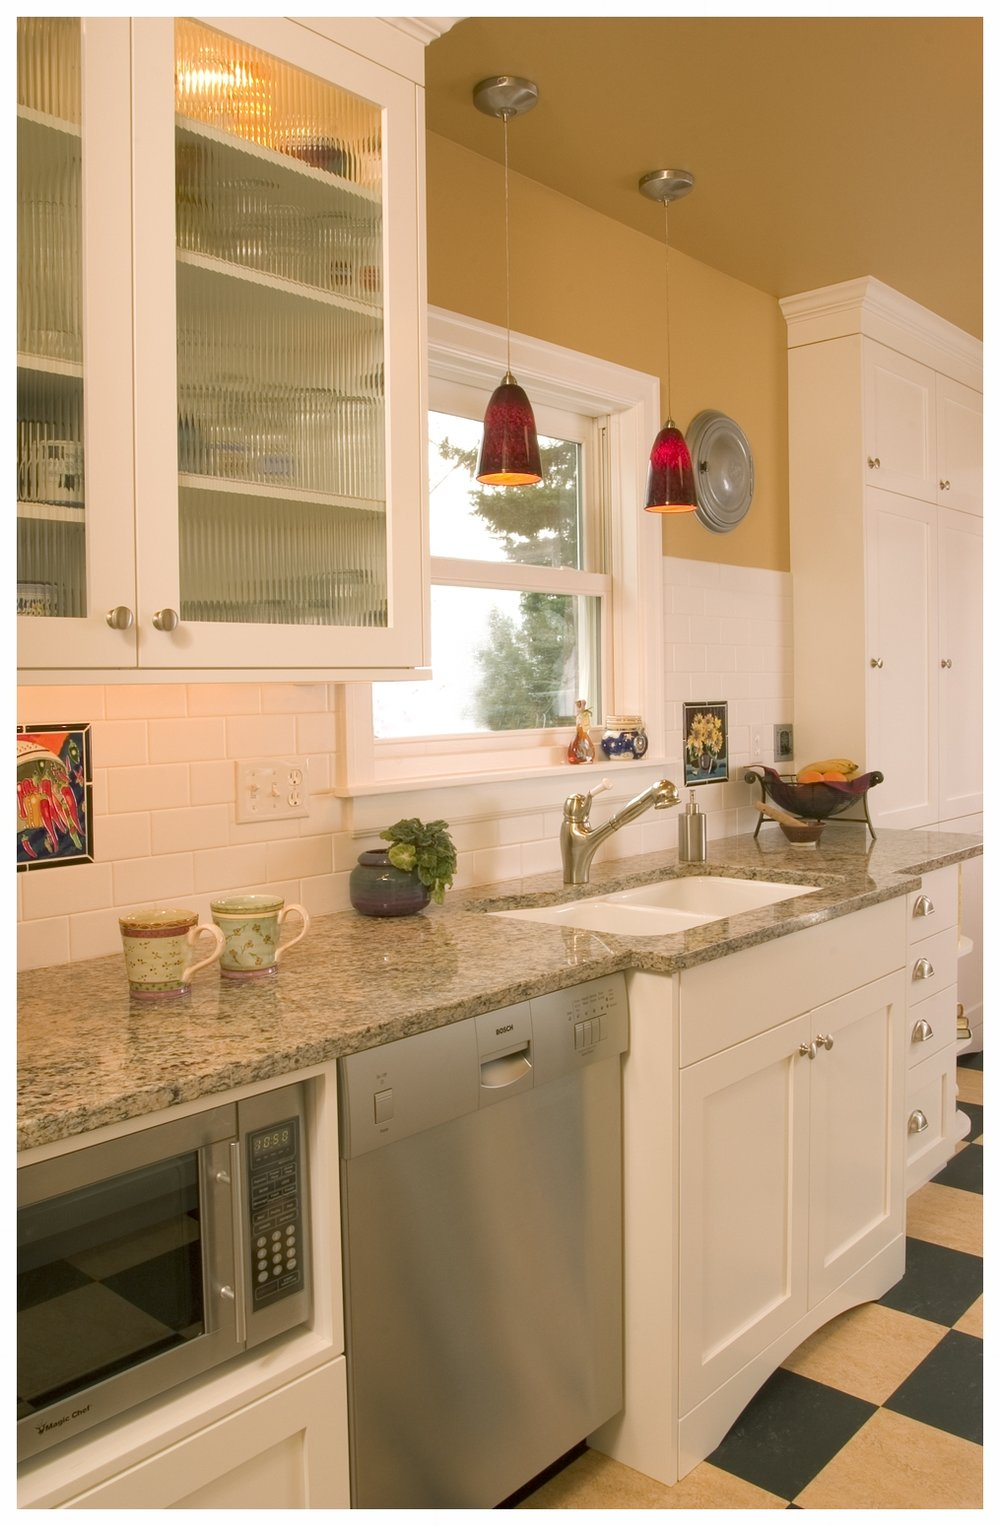 Ballard Bungalow Kitchen 4.jpg